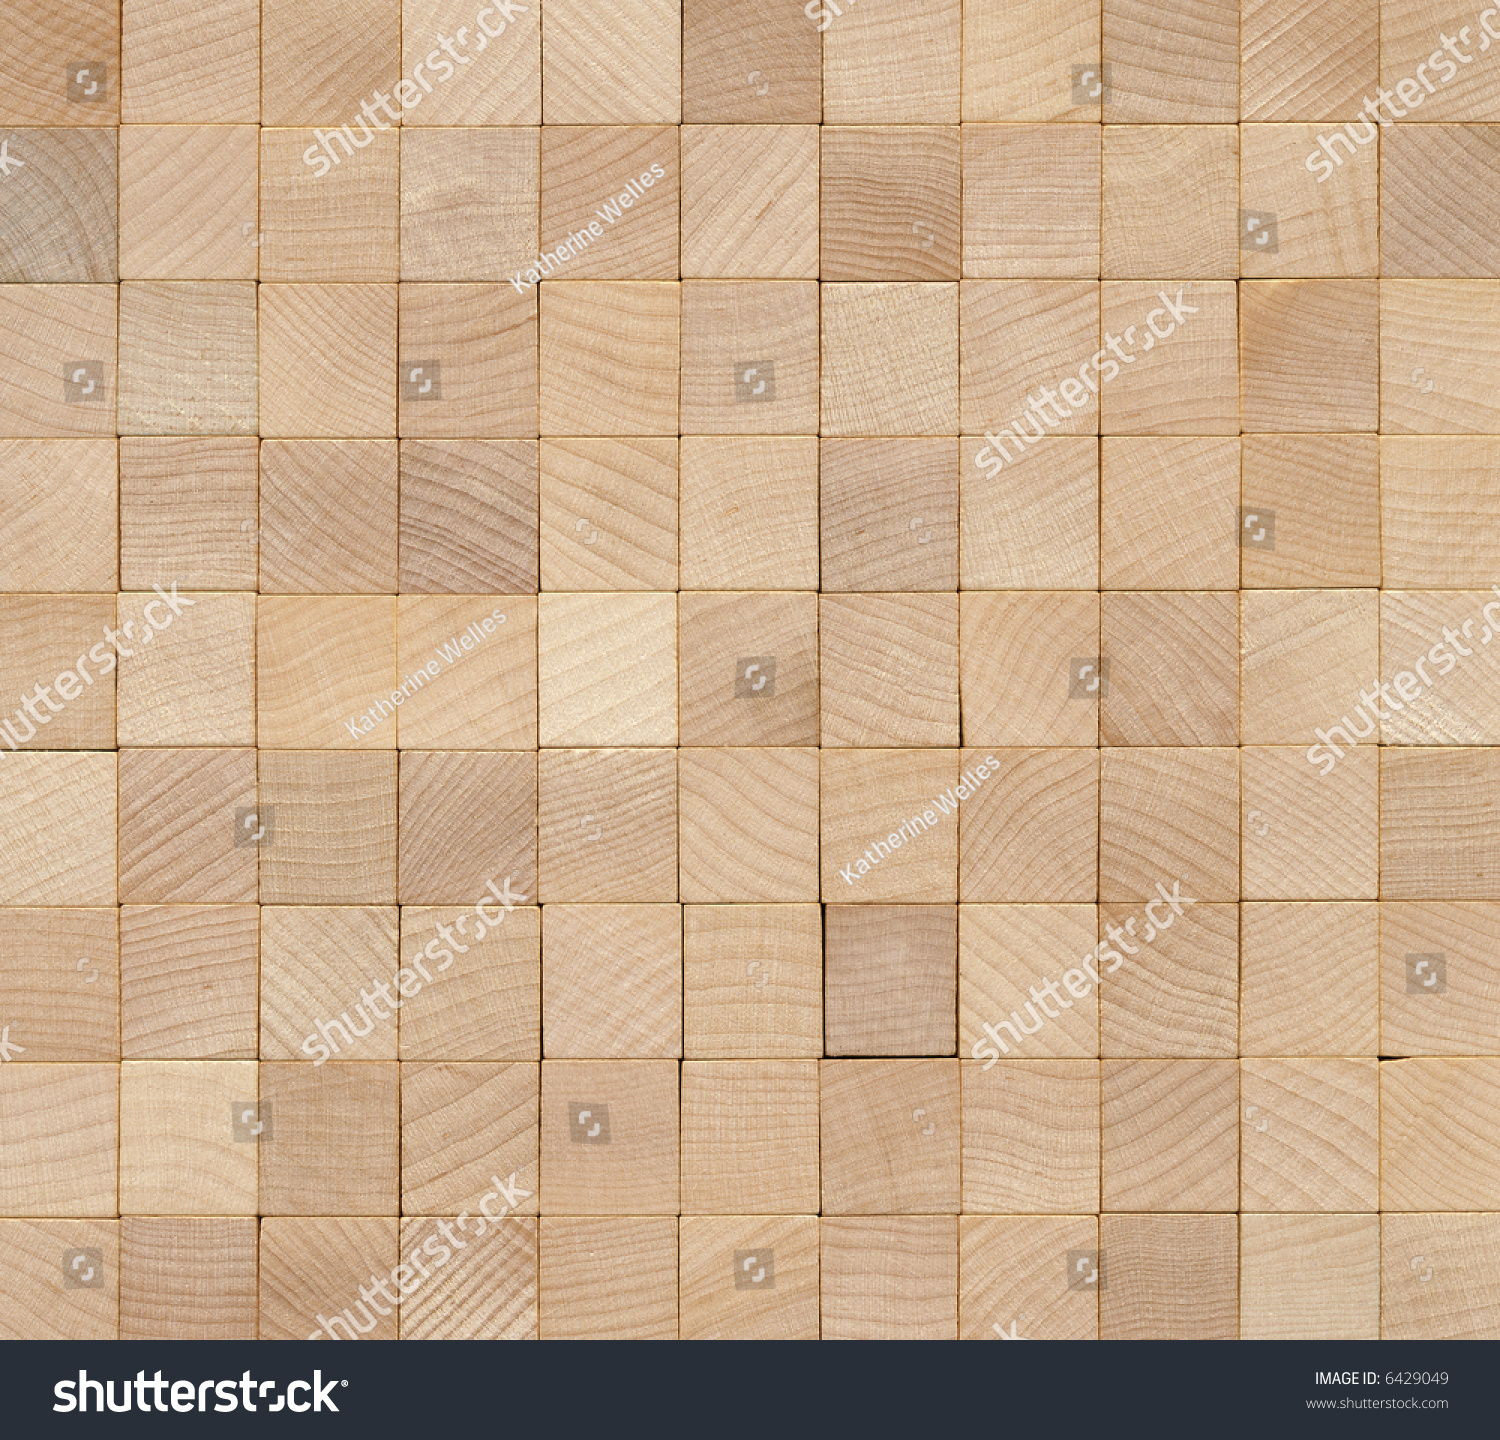 Blank Wooden Board Game Tiles Arranged Stock Photo & Image (Royalty ...